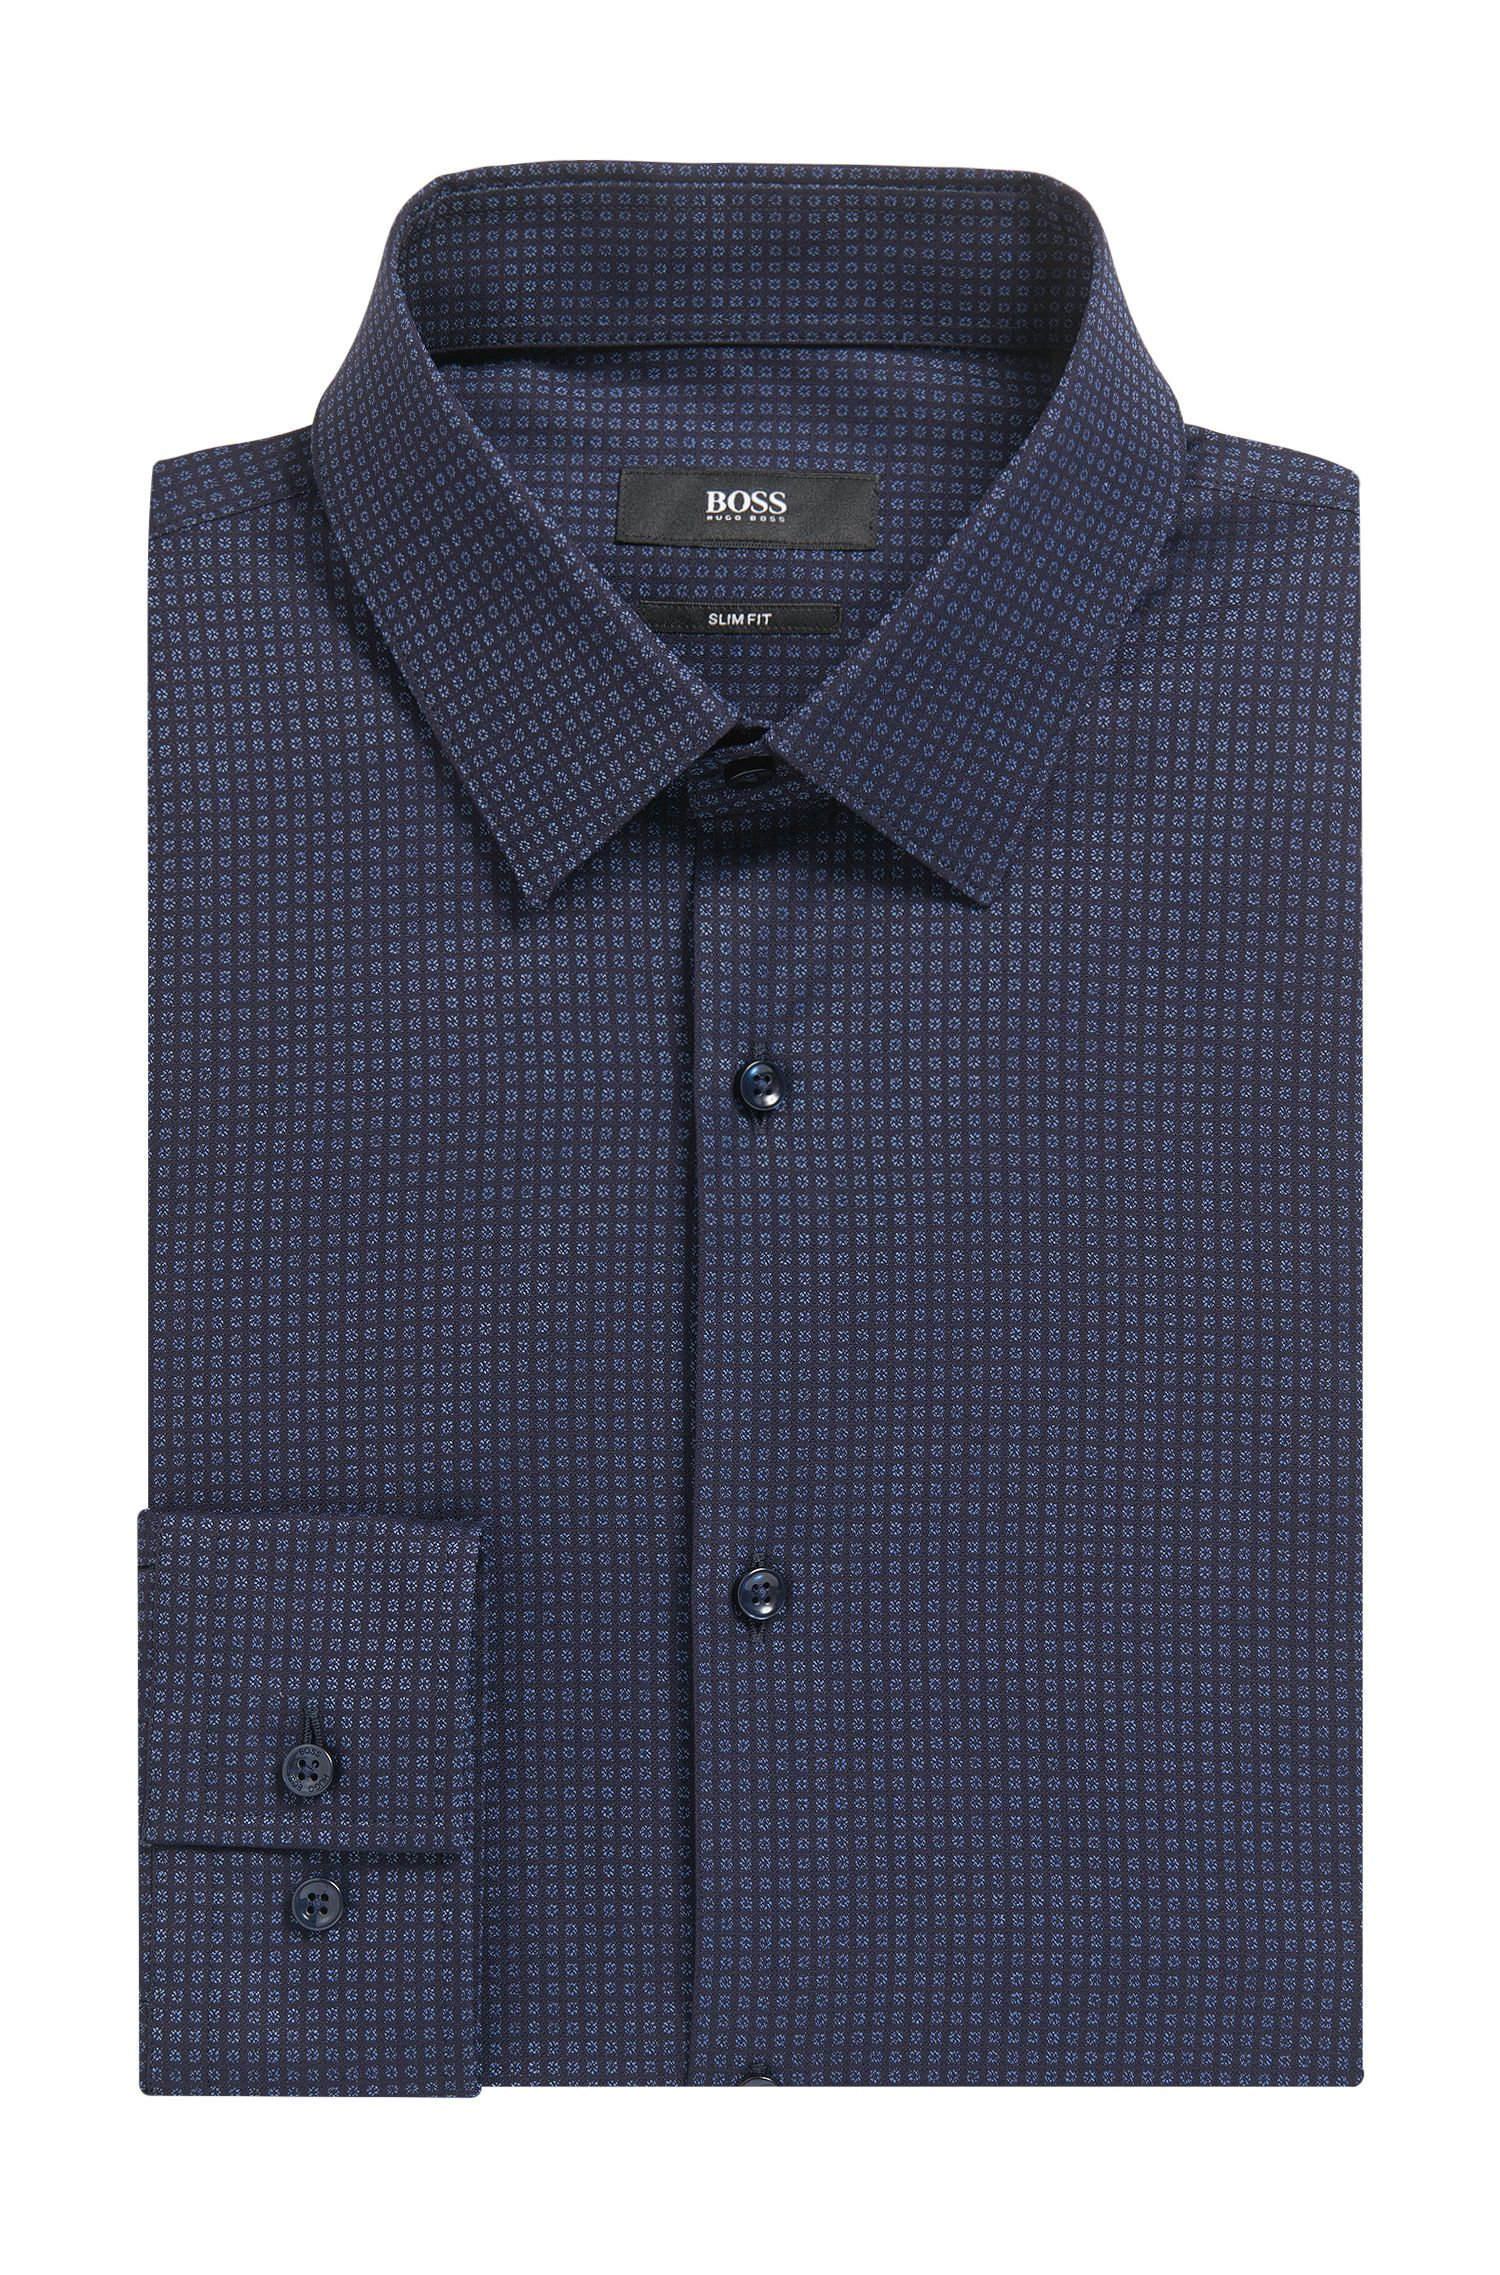 'Isko' | Slim Fit, Patterned Stretch Cotton Dress Shirt